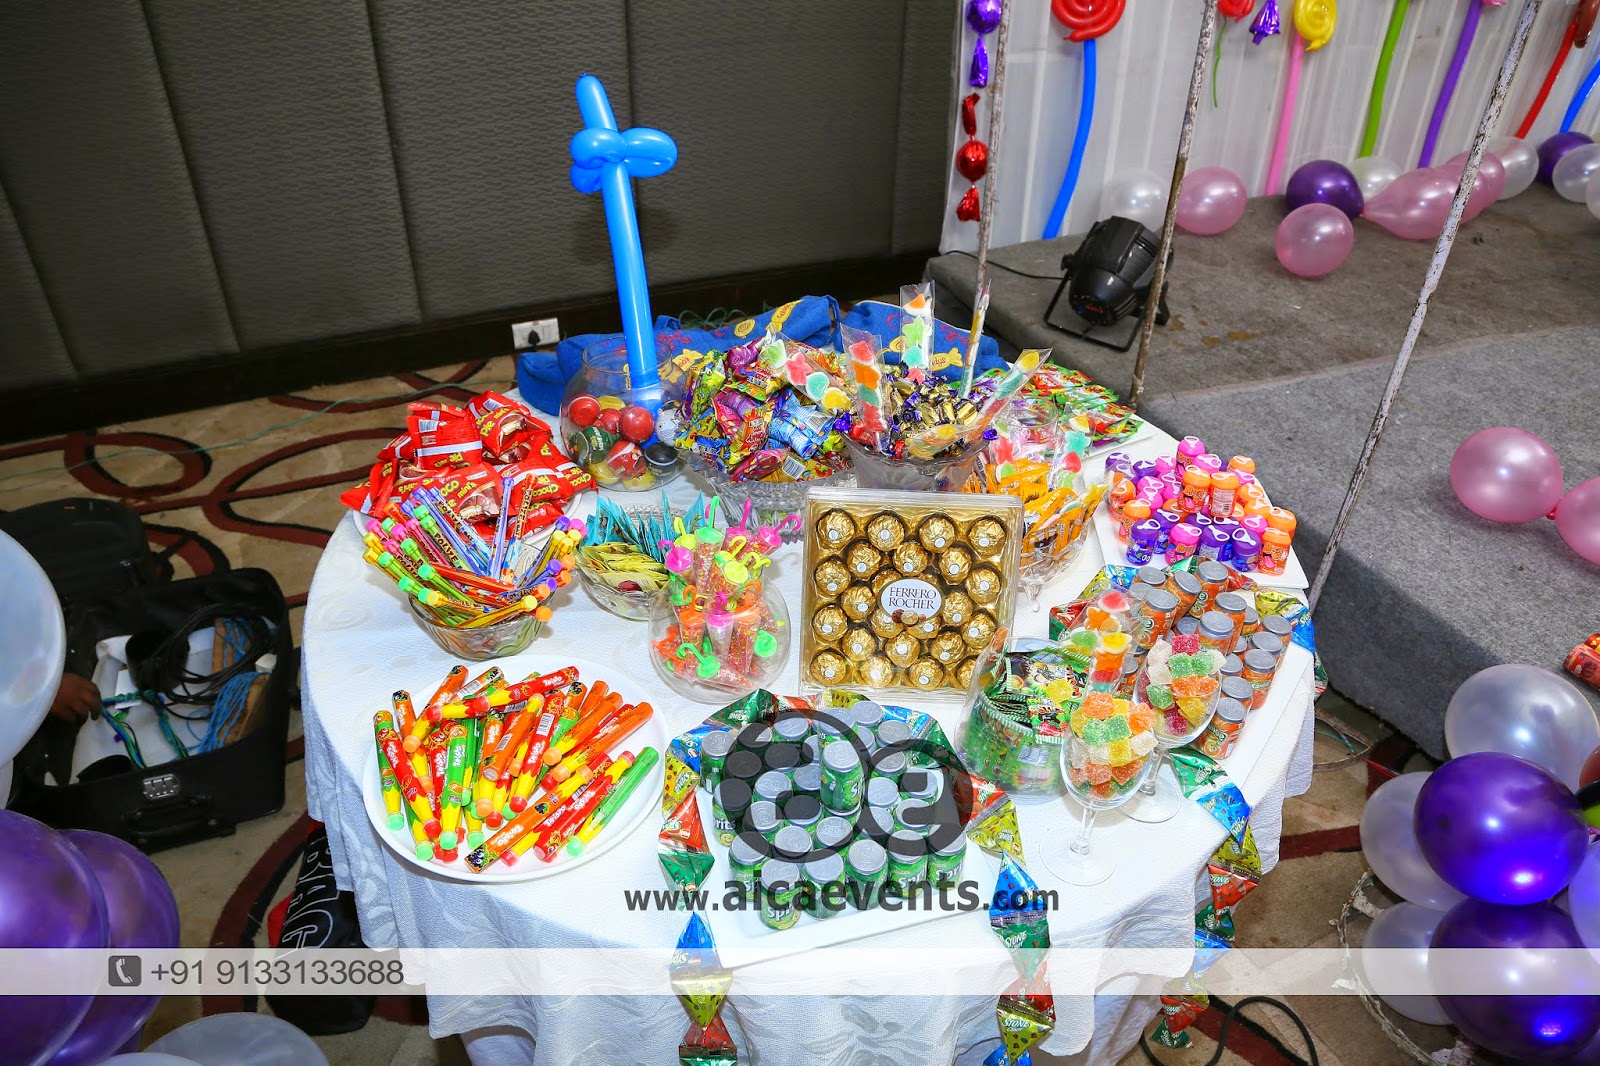 Aicaevents india candy crush theme birthday party